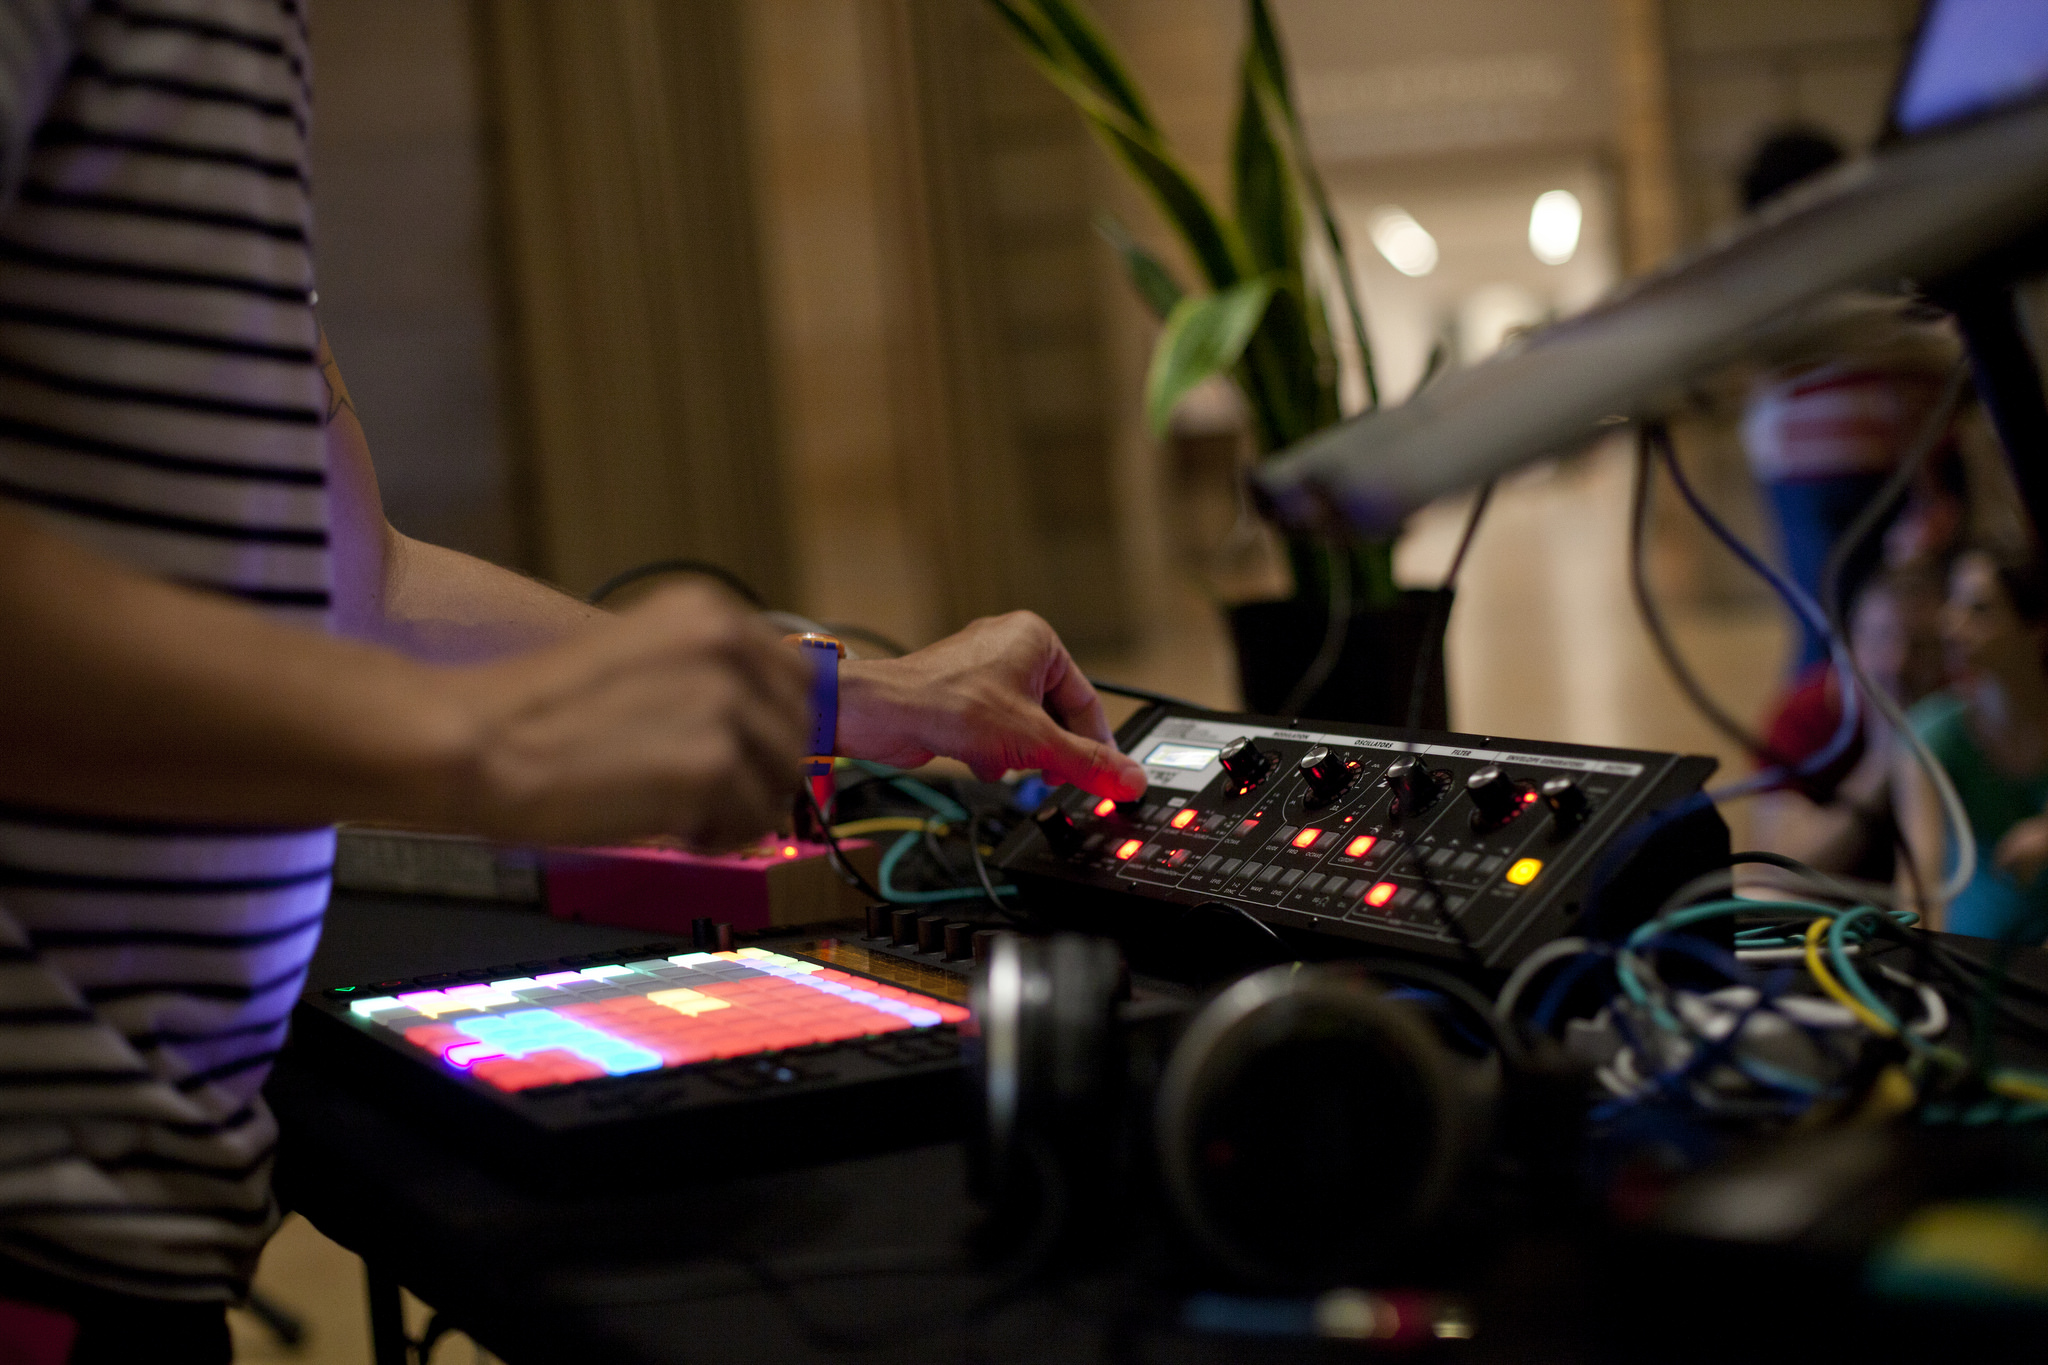 Live at the Philadelphia Museum Of Art Aug 2nd, 2014 for Data Garden's Art Splash Event